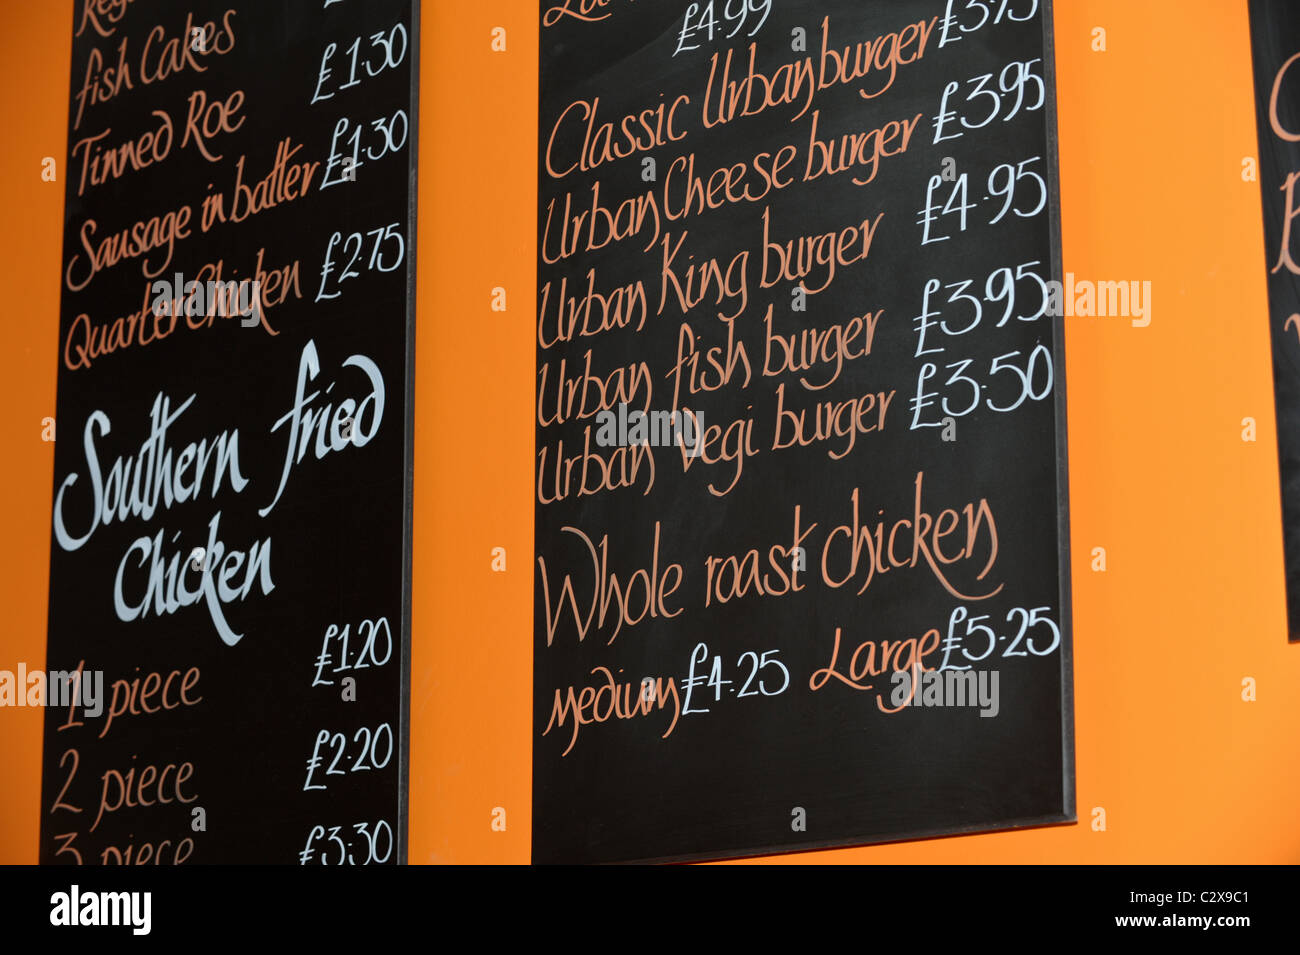 Fast food menu on a blackboard  listing southern fried chicken, sausage in batter, classic burgers and whole roast Stock Photo